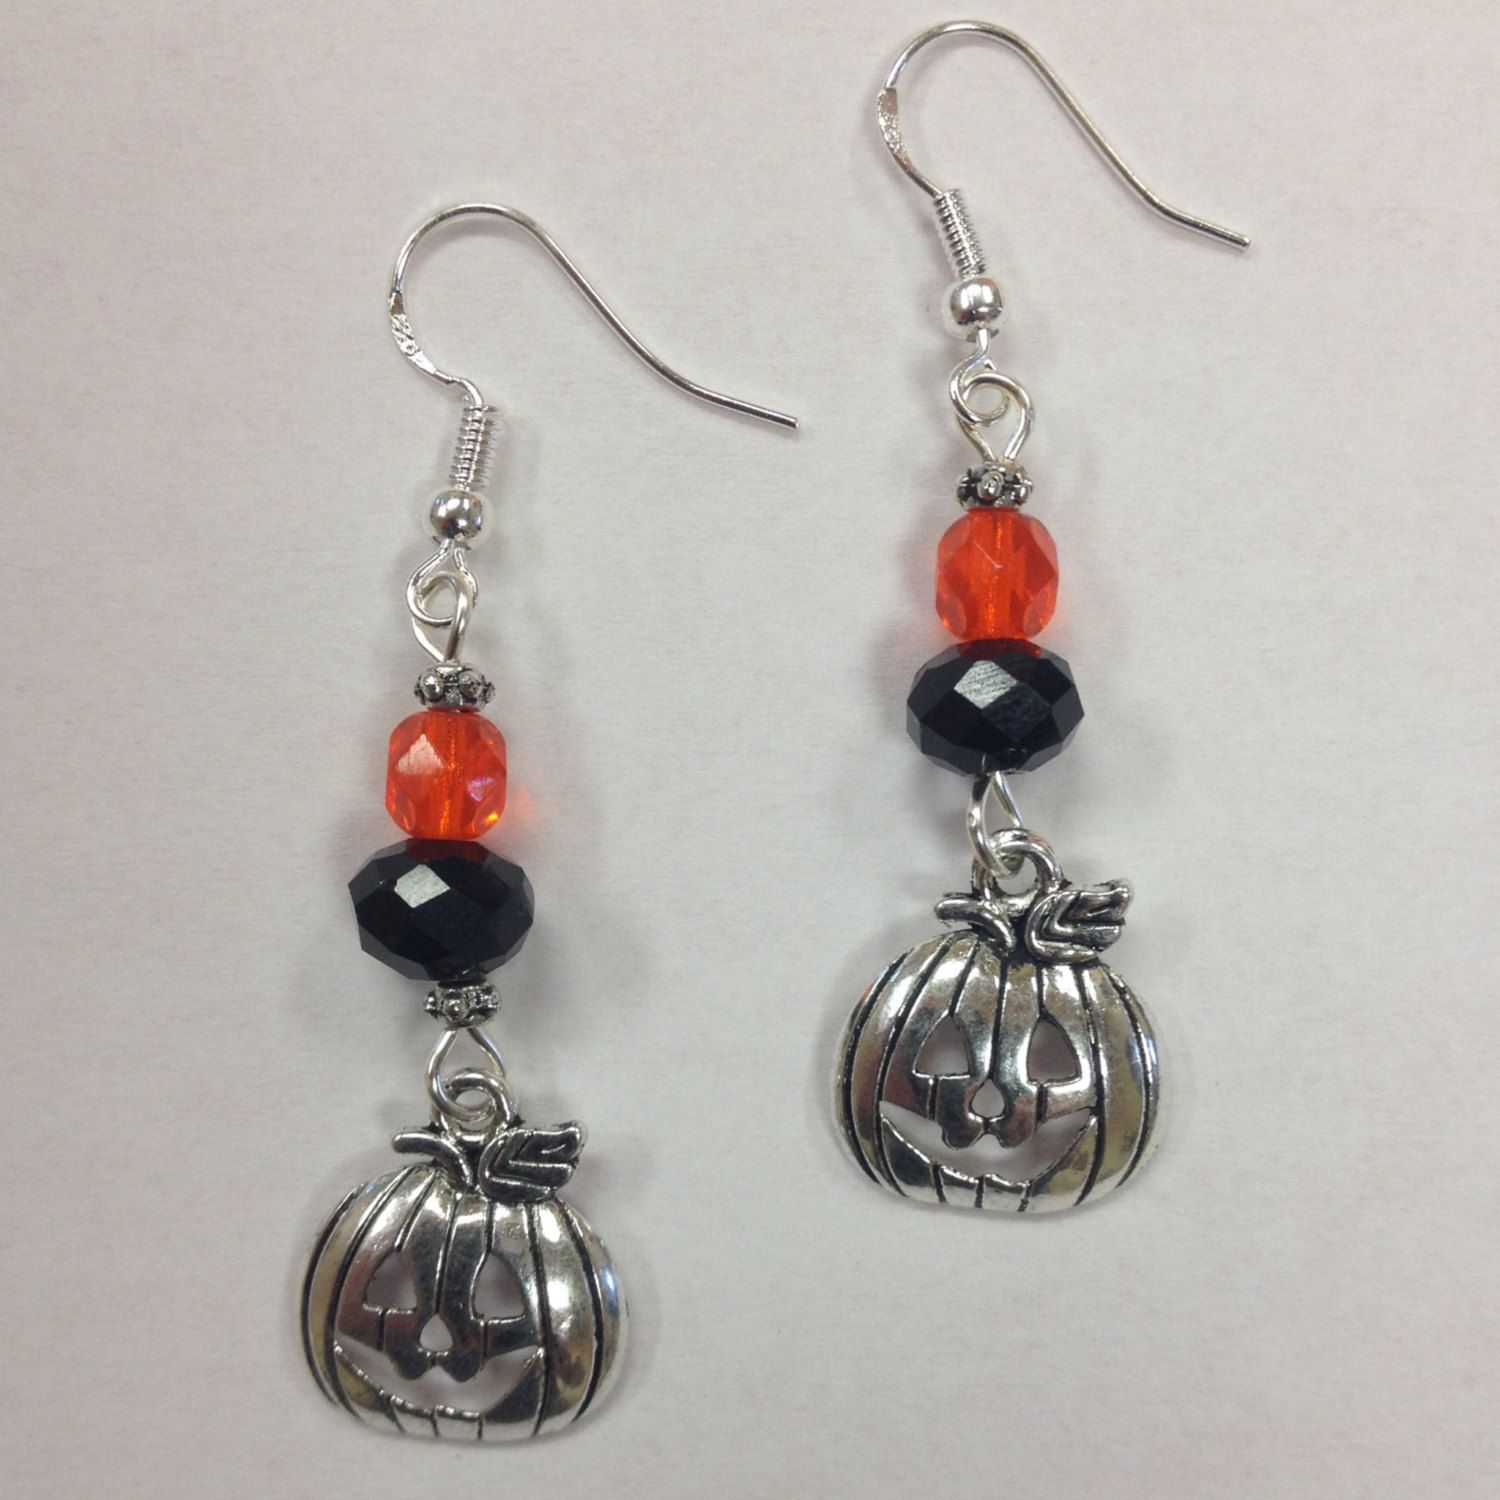 Pumpkin, Fall or Halloween Earrings, with orange & black crystal accent beads - on sterling silver earwires by AnnPedenJewelry on Etsy